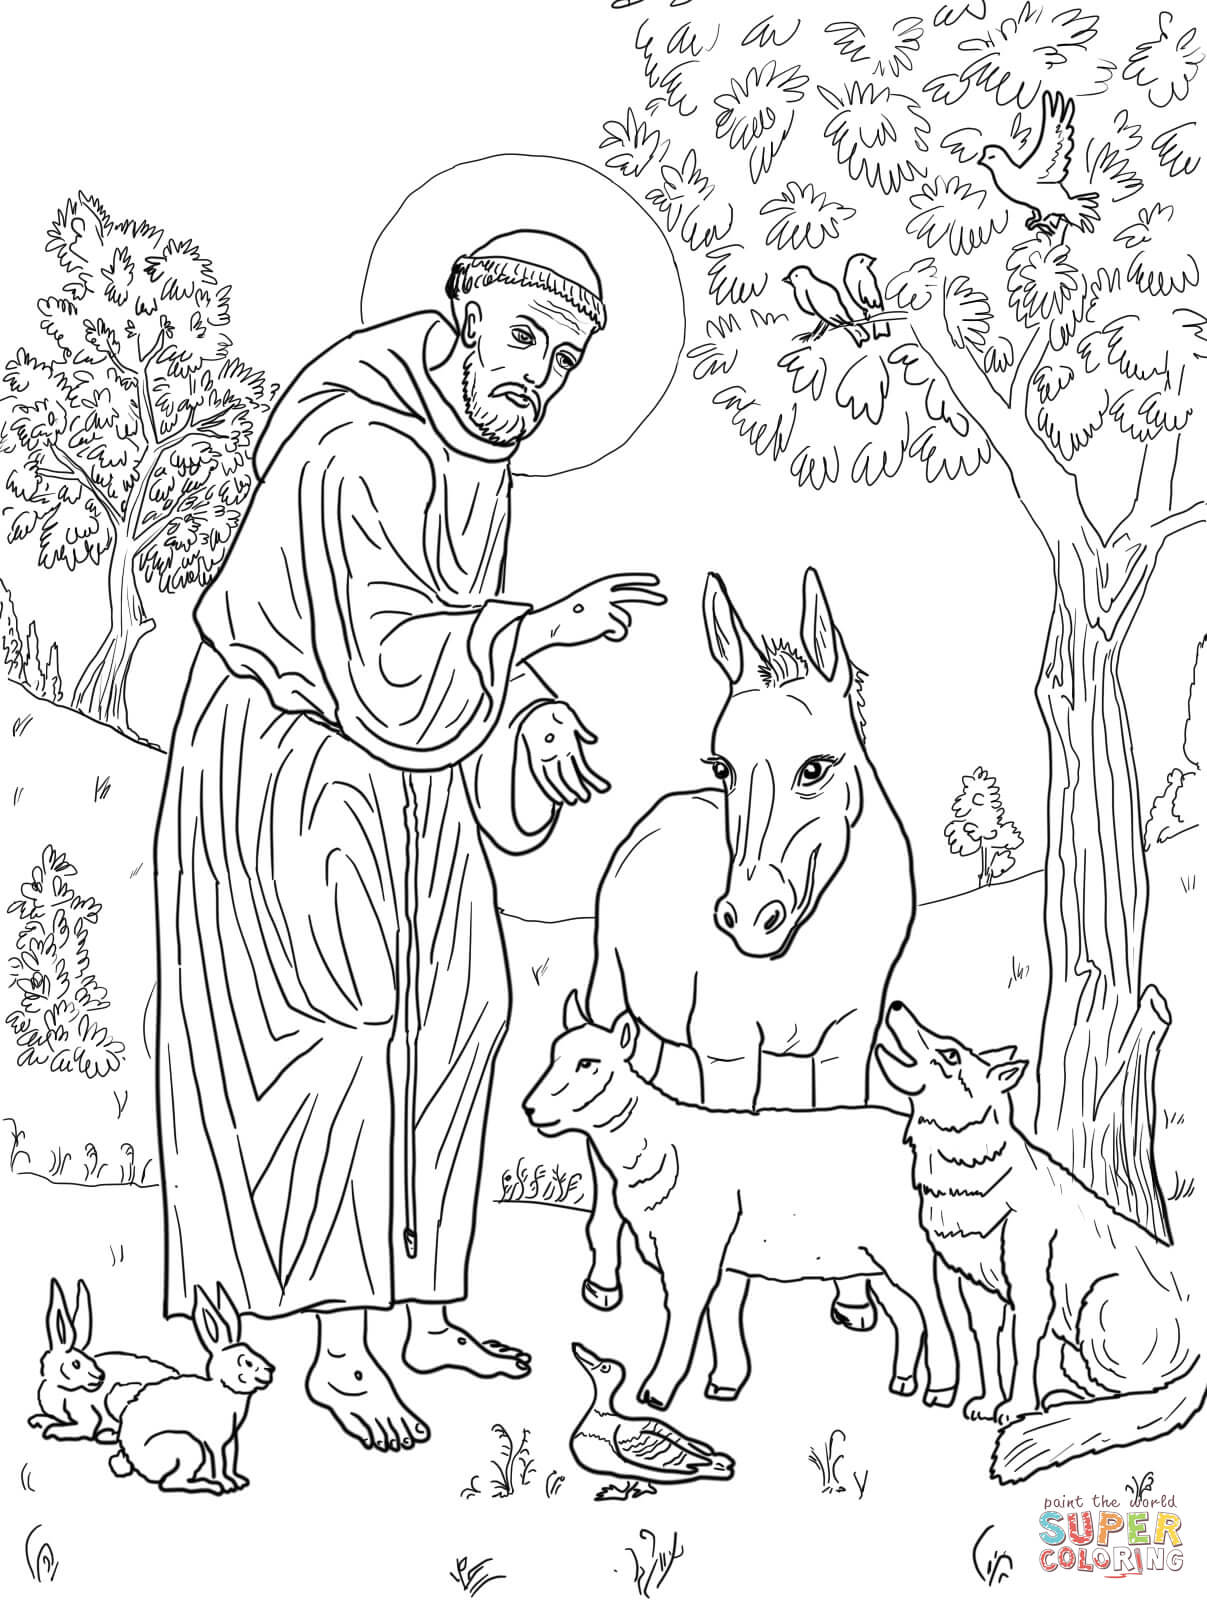 st francis of assisi coloring page saint francis blessing animals coloring page coloring assisi of page st francis